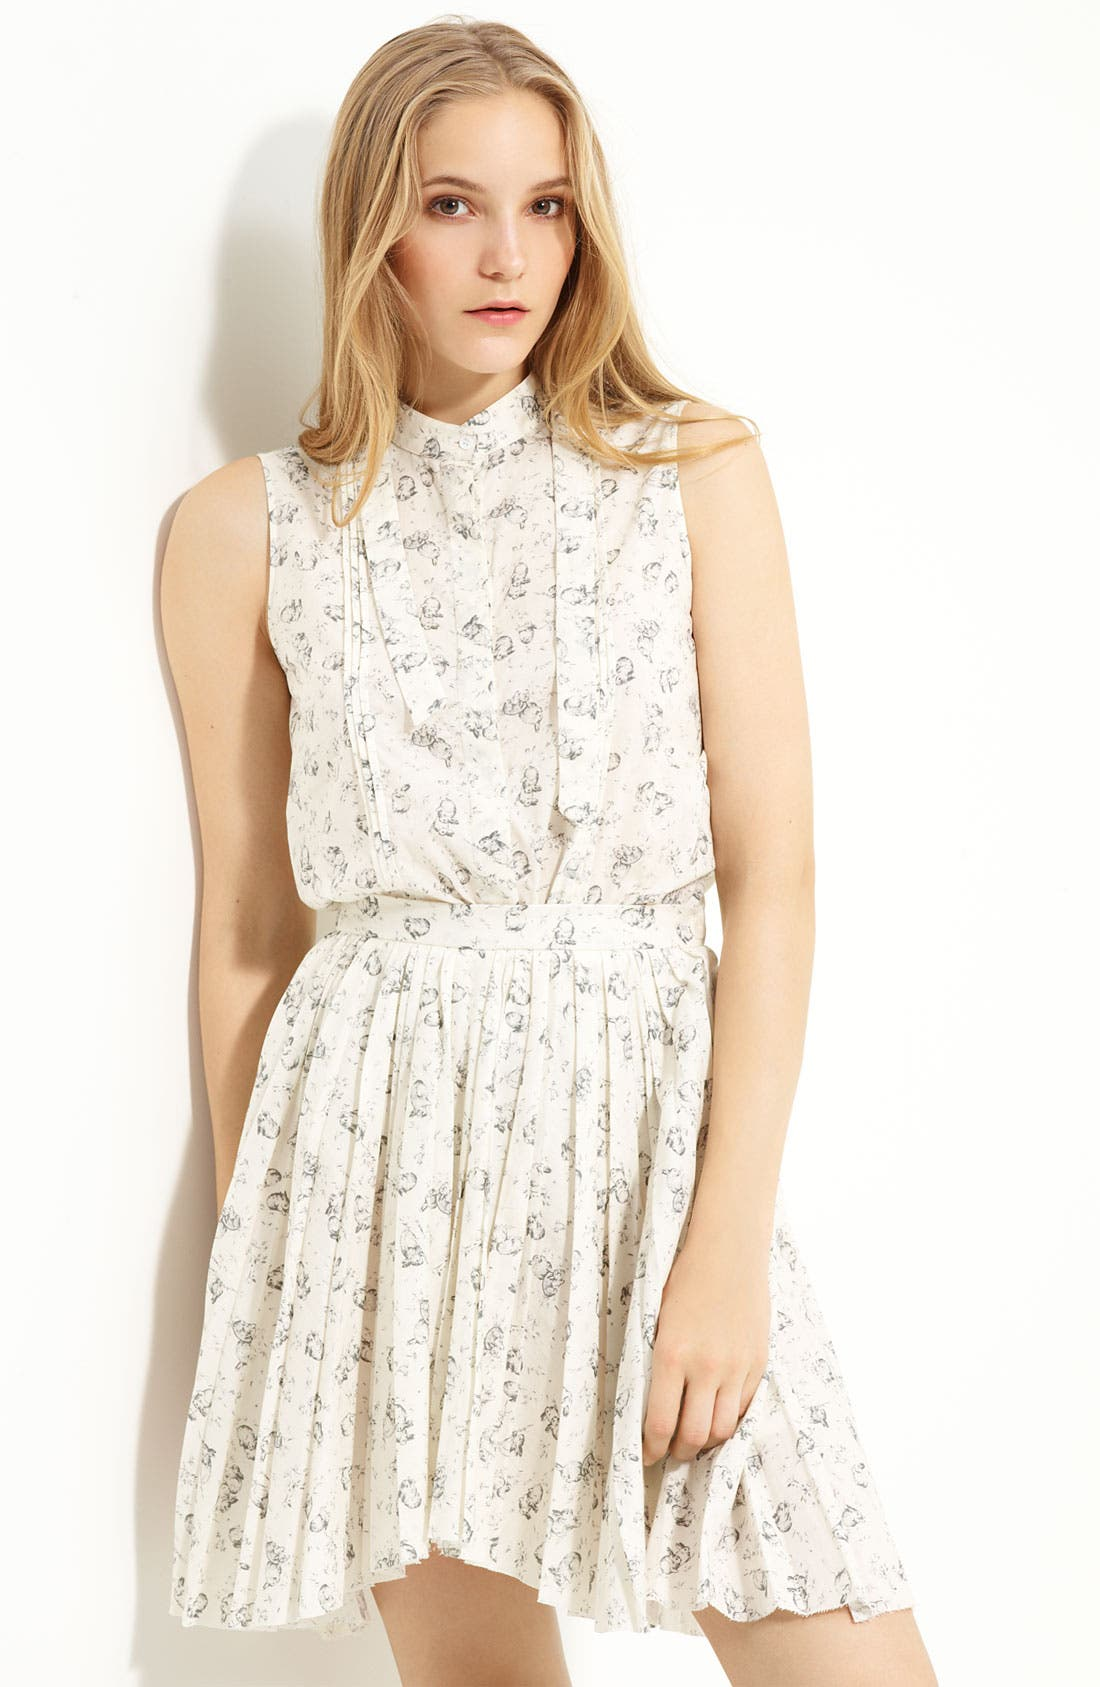 BOY. BY BAND OF OUTSIDERS, Band of Outsiders Rabbit Print Sleeveless Top, Main thumbnail 1, color, 110